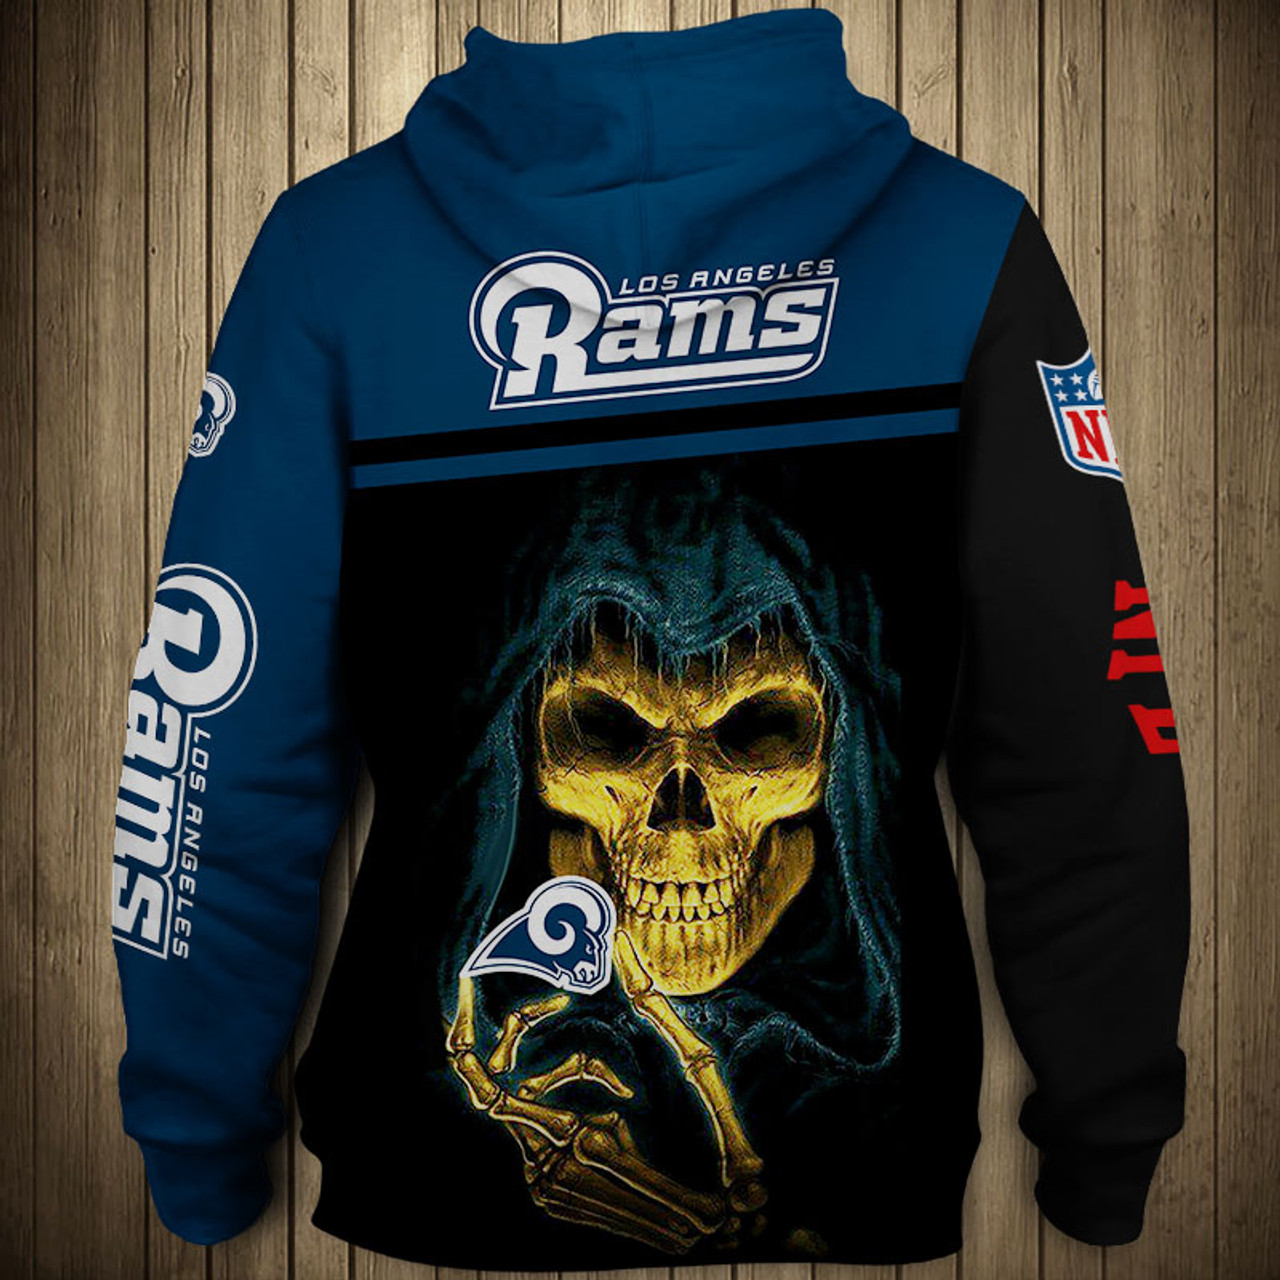 **(OFFICIAL-NEW-N.F.L.LOS-ANGELES-RAMS-TEAM-PULLOVER-HOODIES/NICE-CUSTOM-3D-GRAPHIC-PRINTED-DOUBLE-SIDED-ALL-OVER-GRAPHIC-RAMS-LOGOS & OFFICIAL-RAMS-TEAM-COLORS/WARM-PREMIUM-OFFICIAL-N.F.L.RAMS-TEAM-PULLOVER-GAME-DAY-HOODIES)**